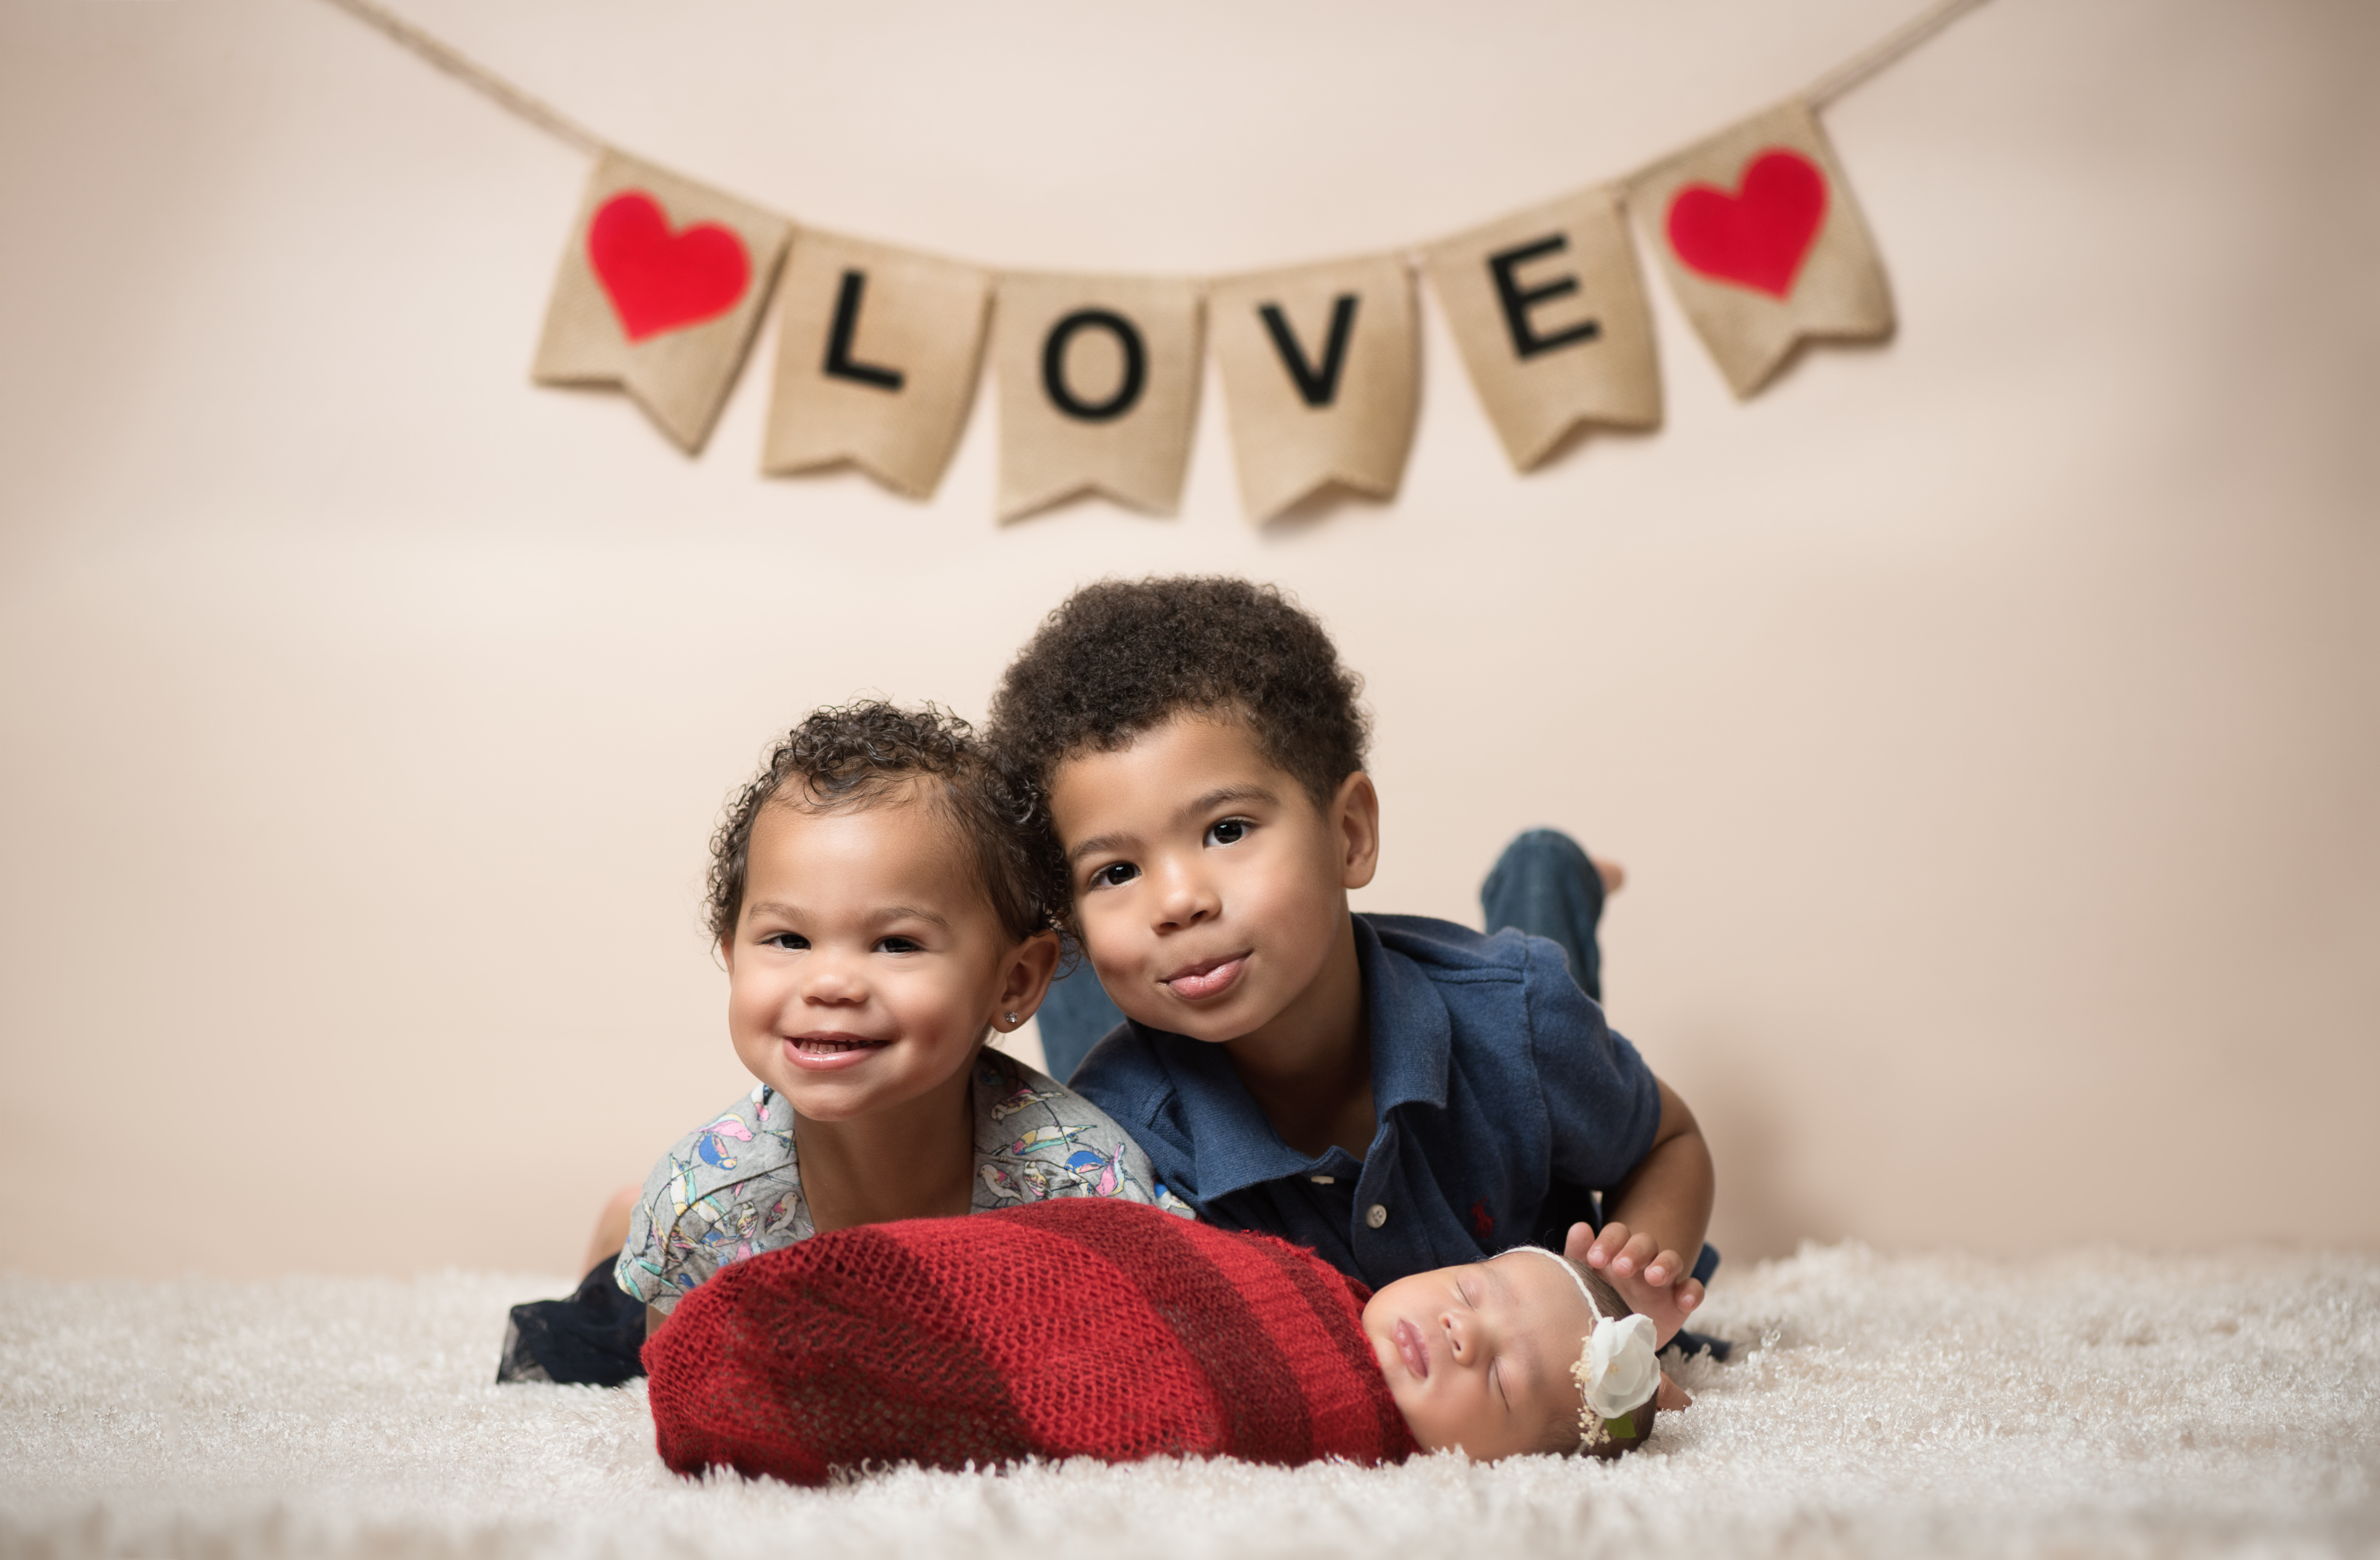 San Antonio Newborn with sibling portraits in Valentine's Day theme